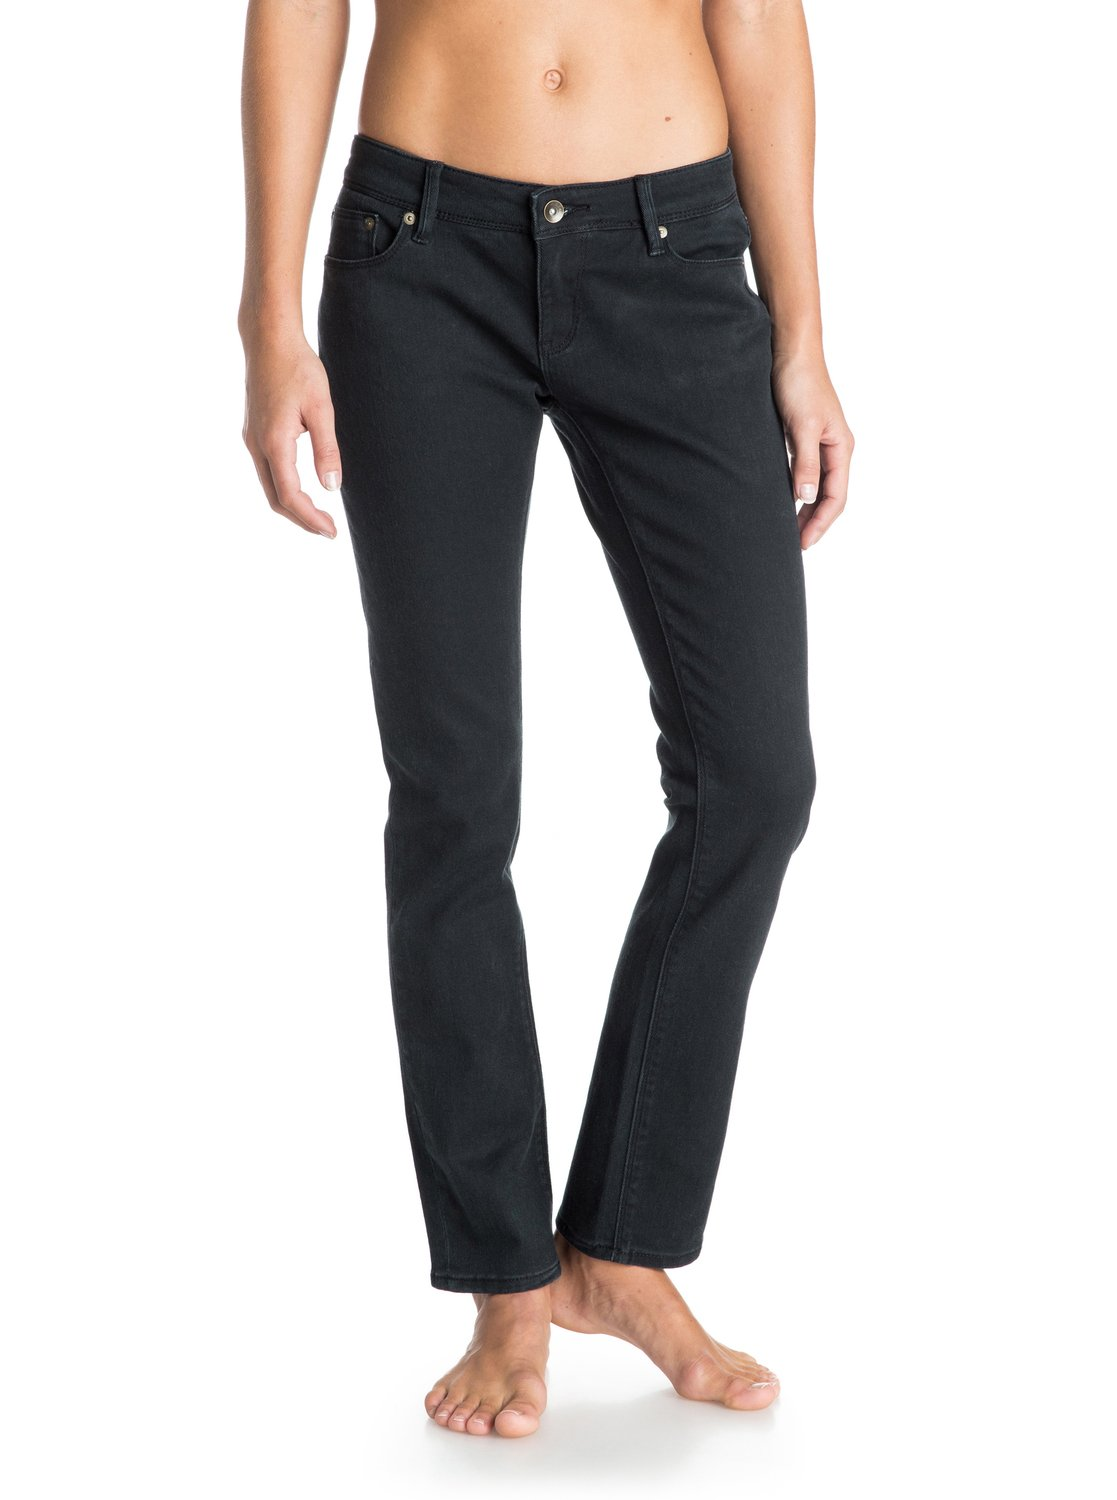 Colored jeans for women from Old Navy are the perfect antidote for a stale closet. Simply switching out your standard old blue or black jeans for one of these inspiring creations. Shop this wonderful selection at Old Navy for the best colored jeans on the market today. Shipping is on us! FREE on orders of $50 or more. FREE Returns on All.